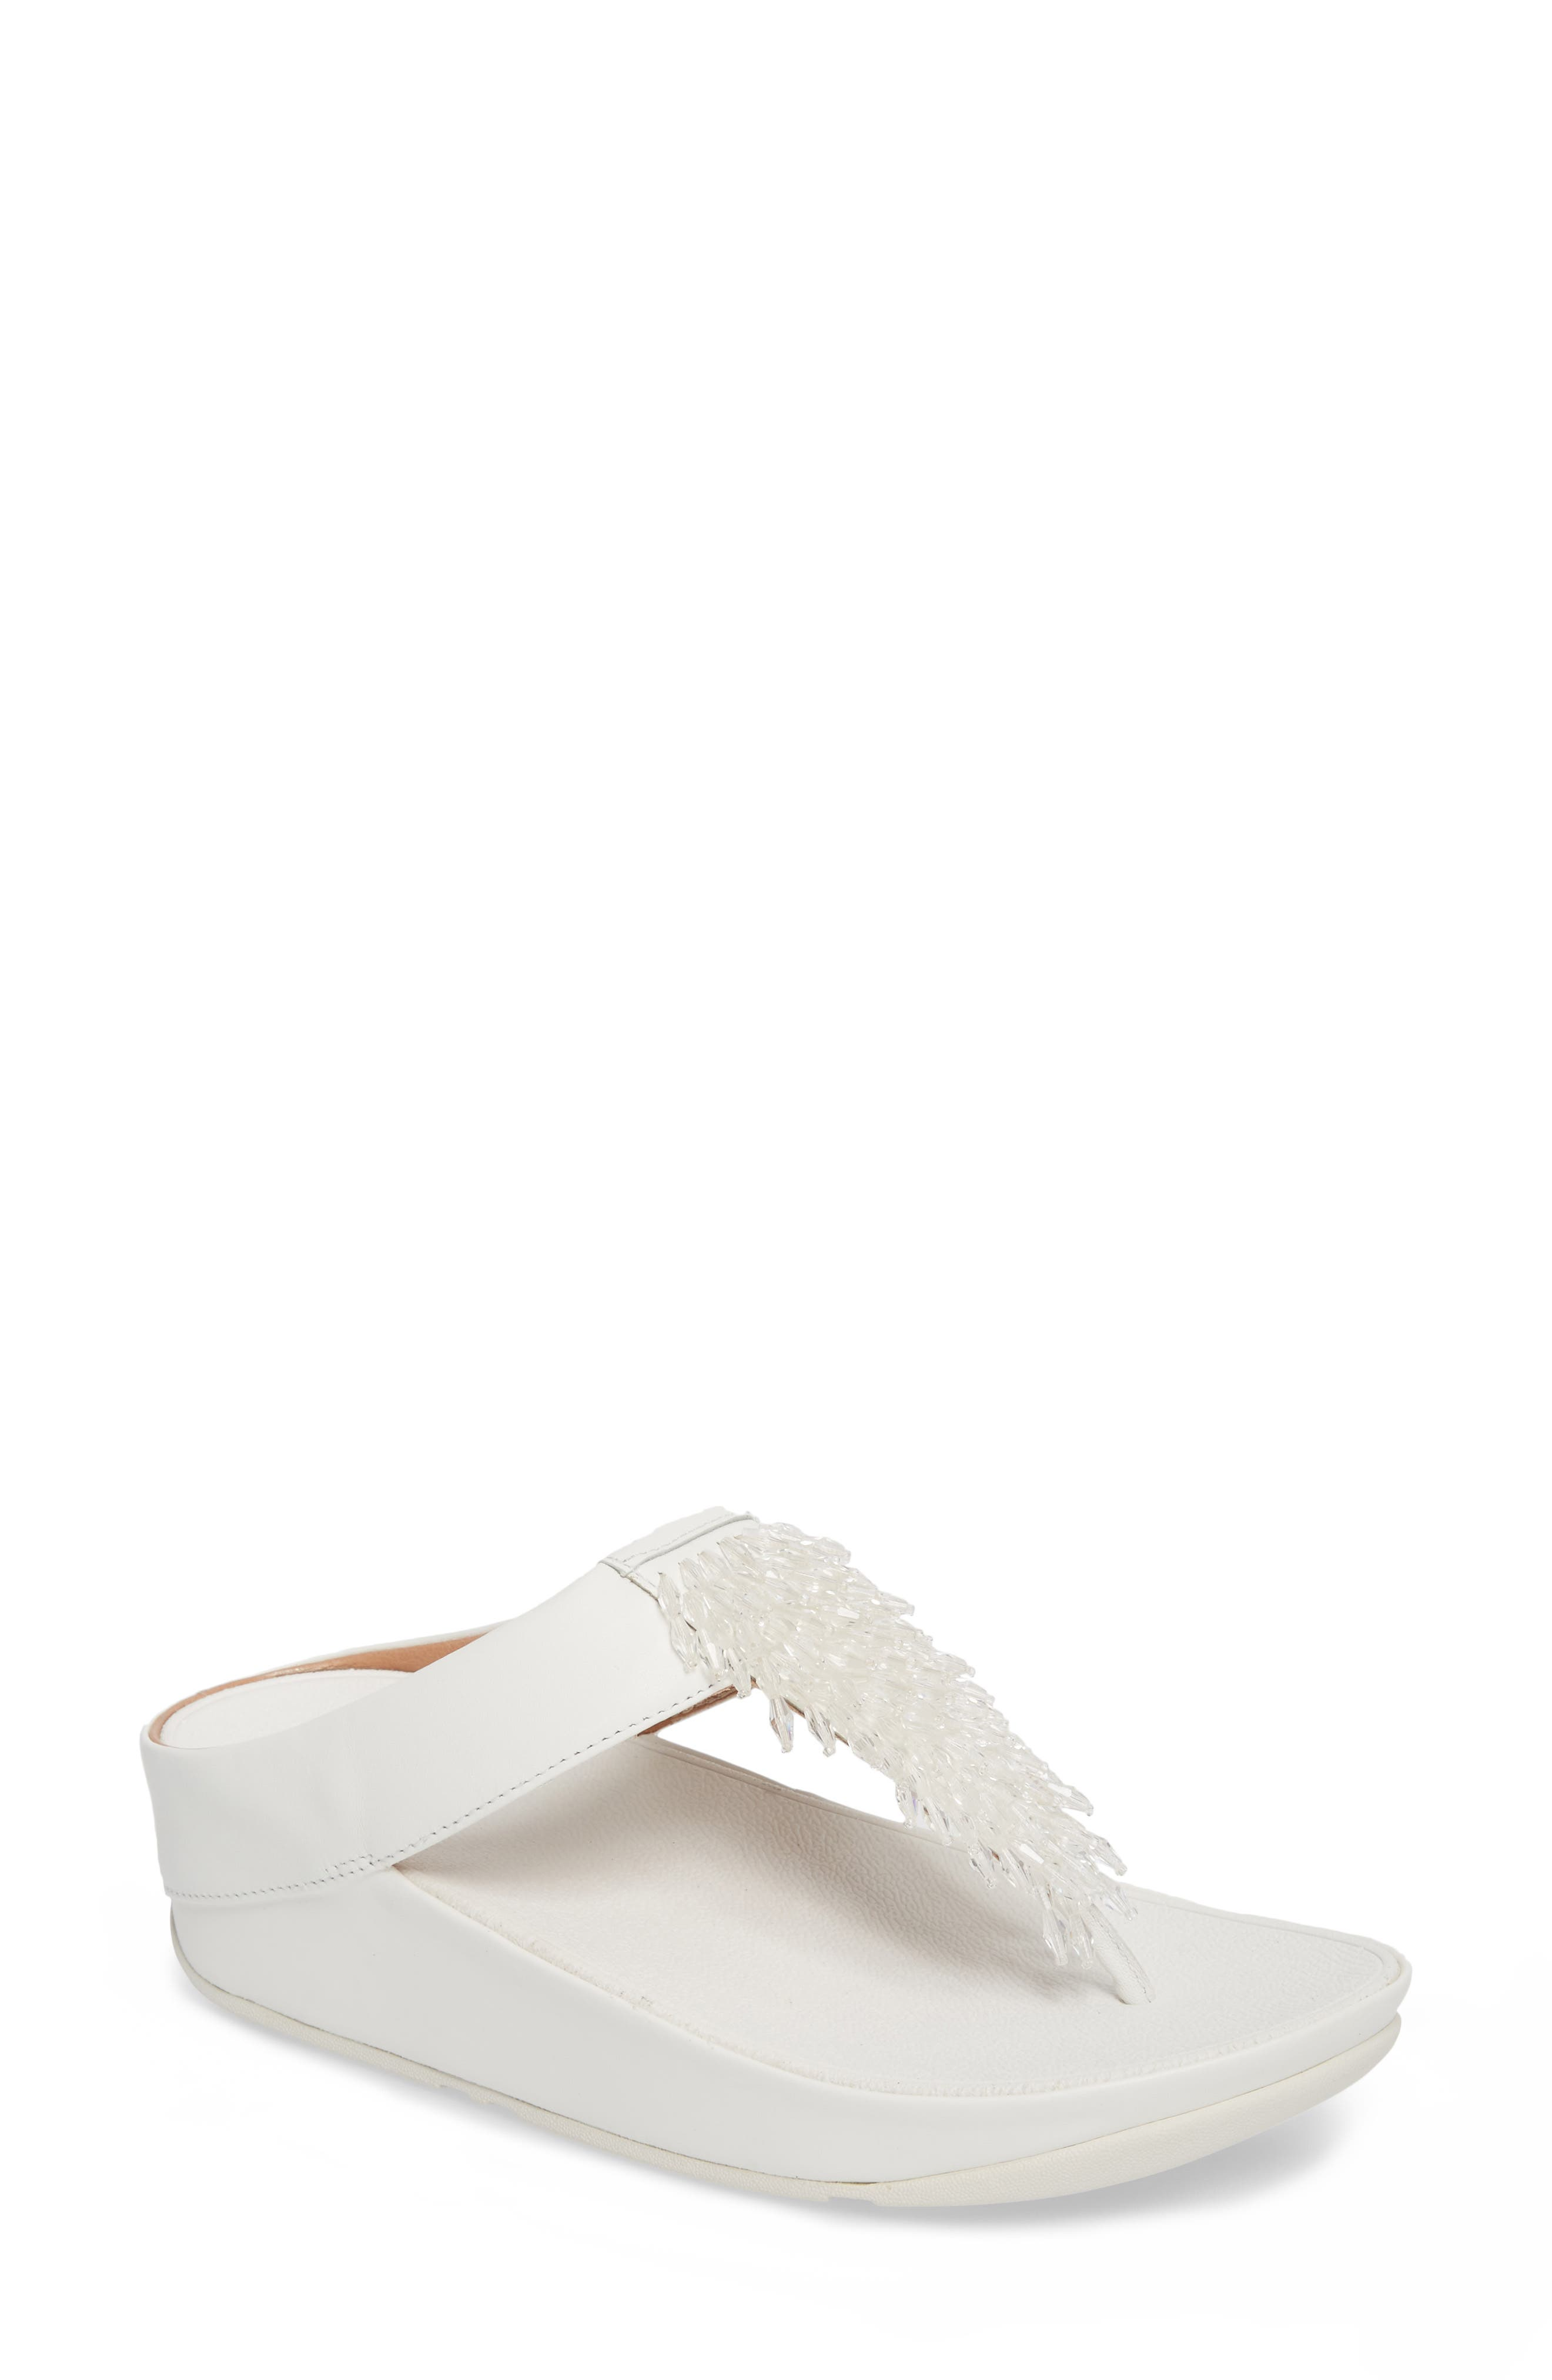 FITFLOP,                             Rumba Sandal,                             Main thumbnail 1, color,                             URBAN WHITE LEATHER